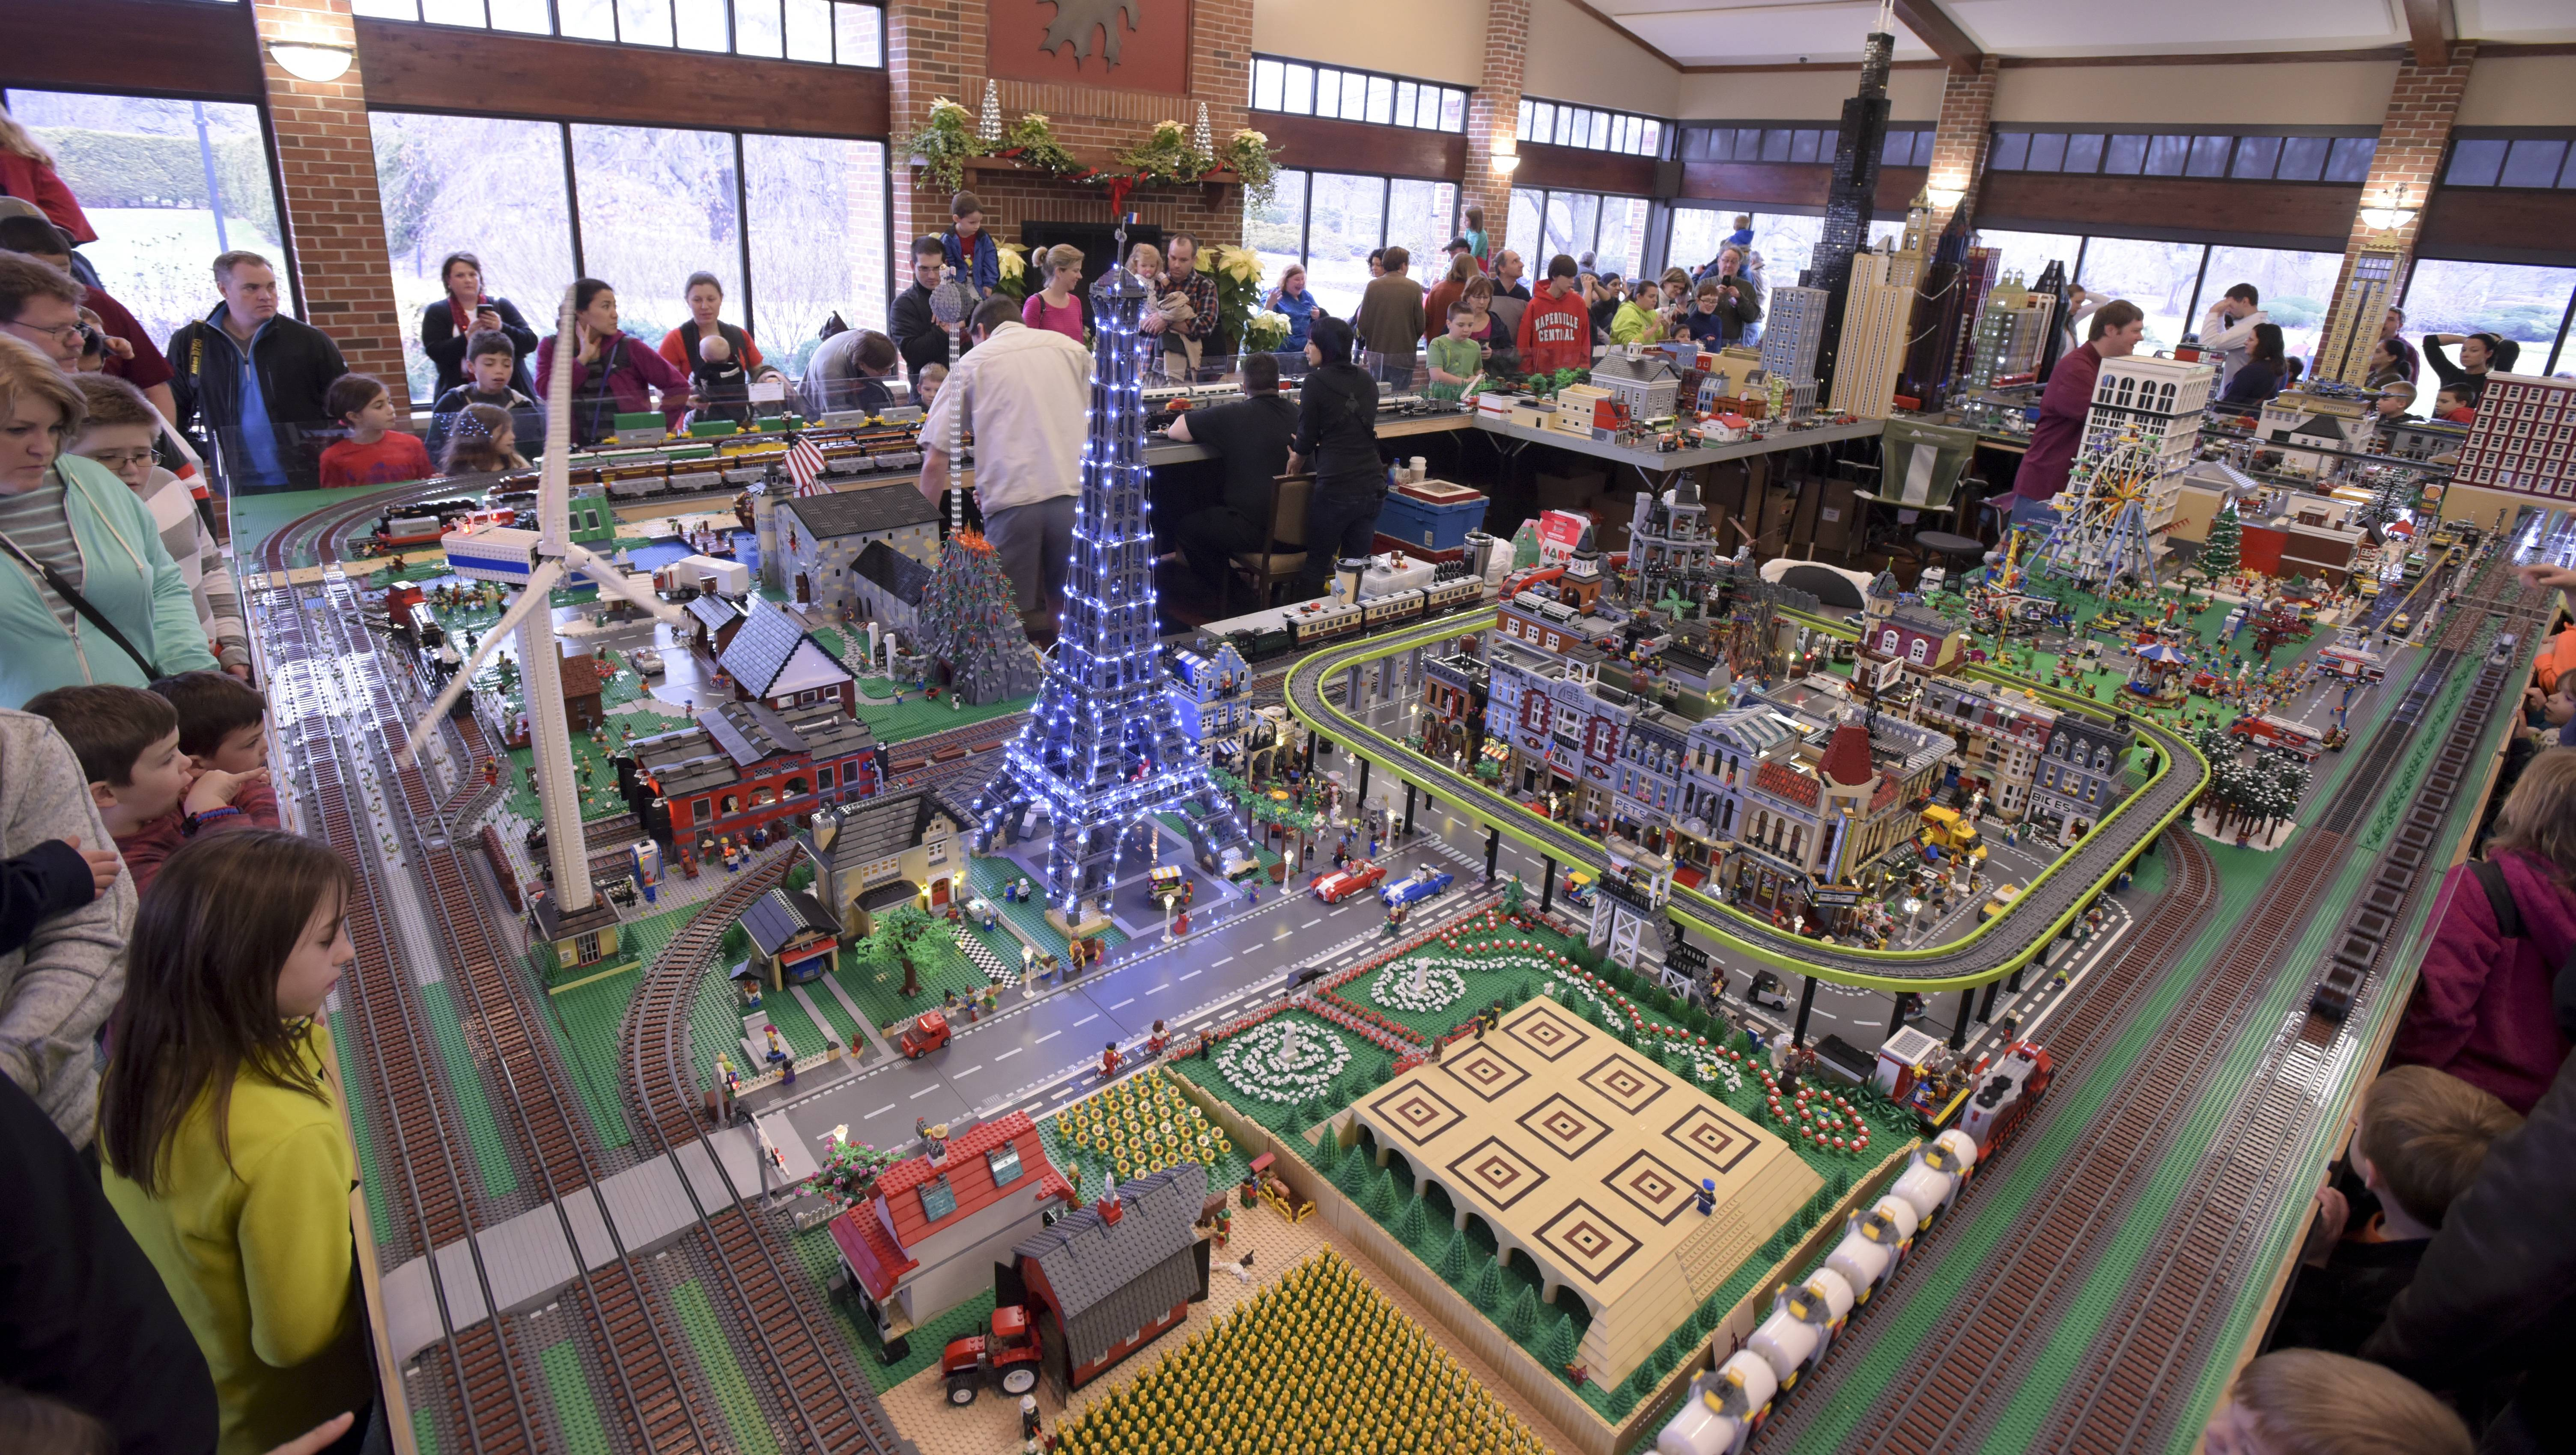 The 14th annual Lego Train Show at Cantigny Park was packed Sunday.